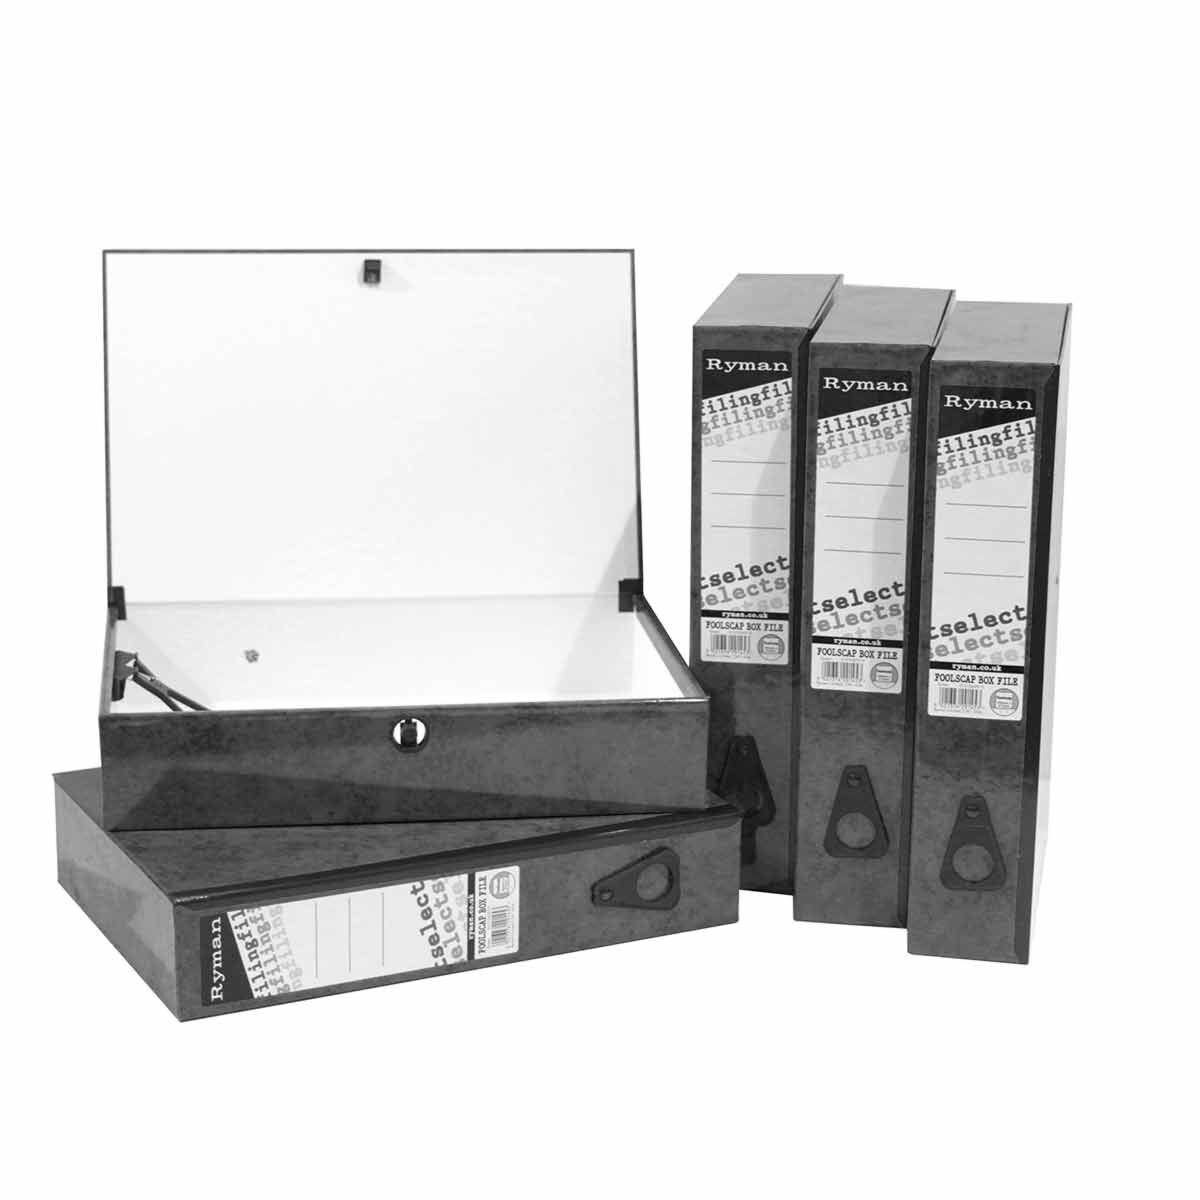 Ryman Select Box File Foolscap Pack of 5